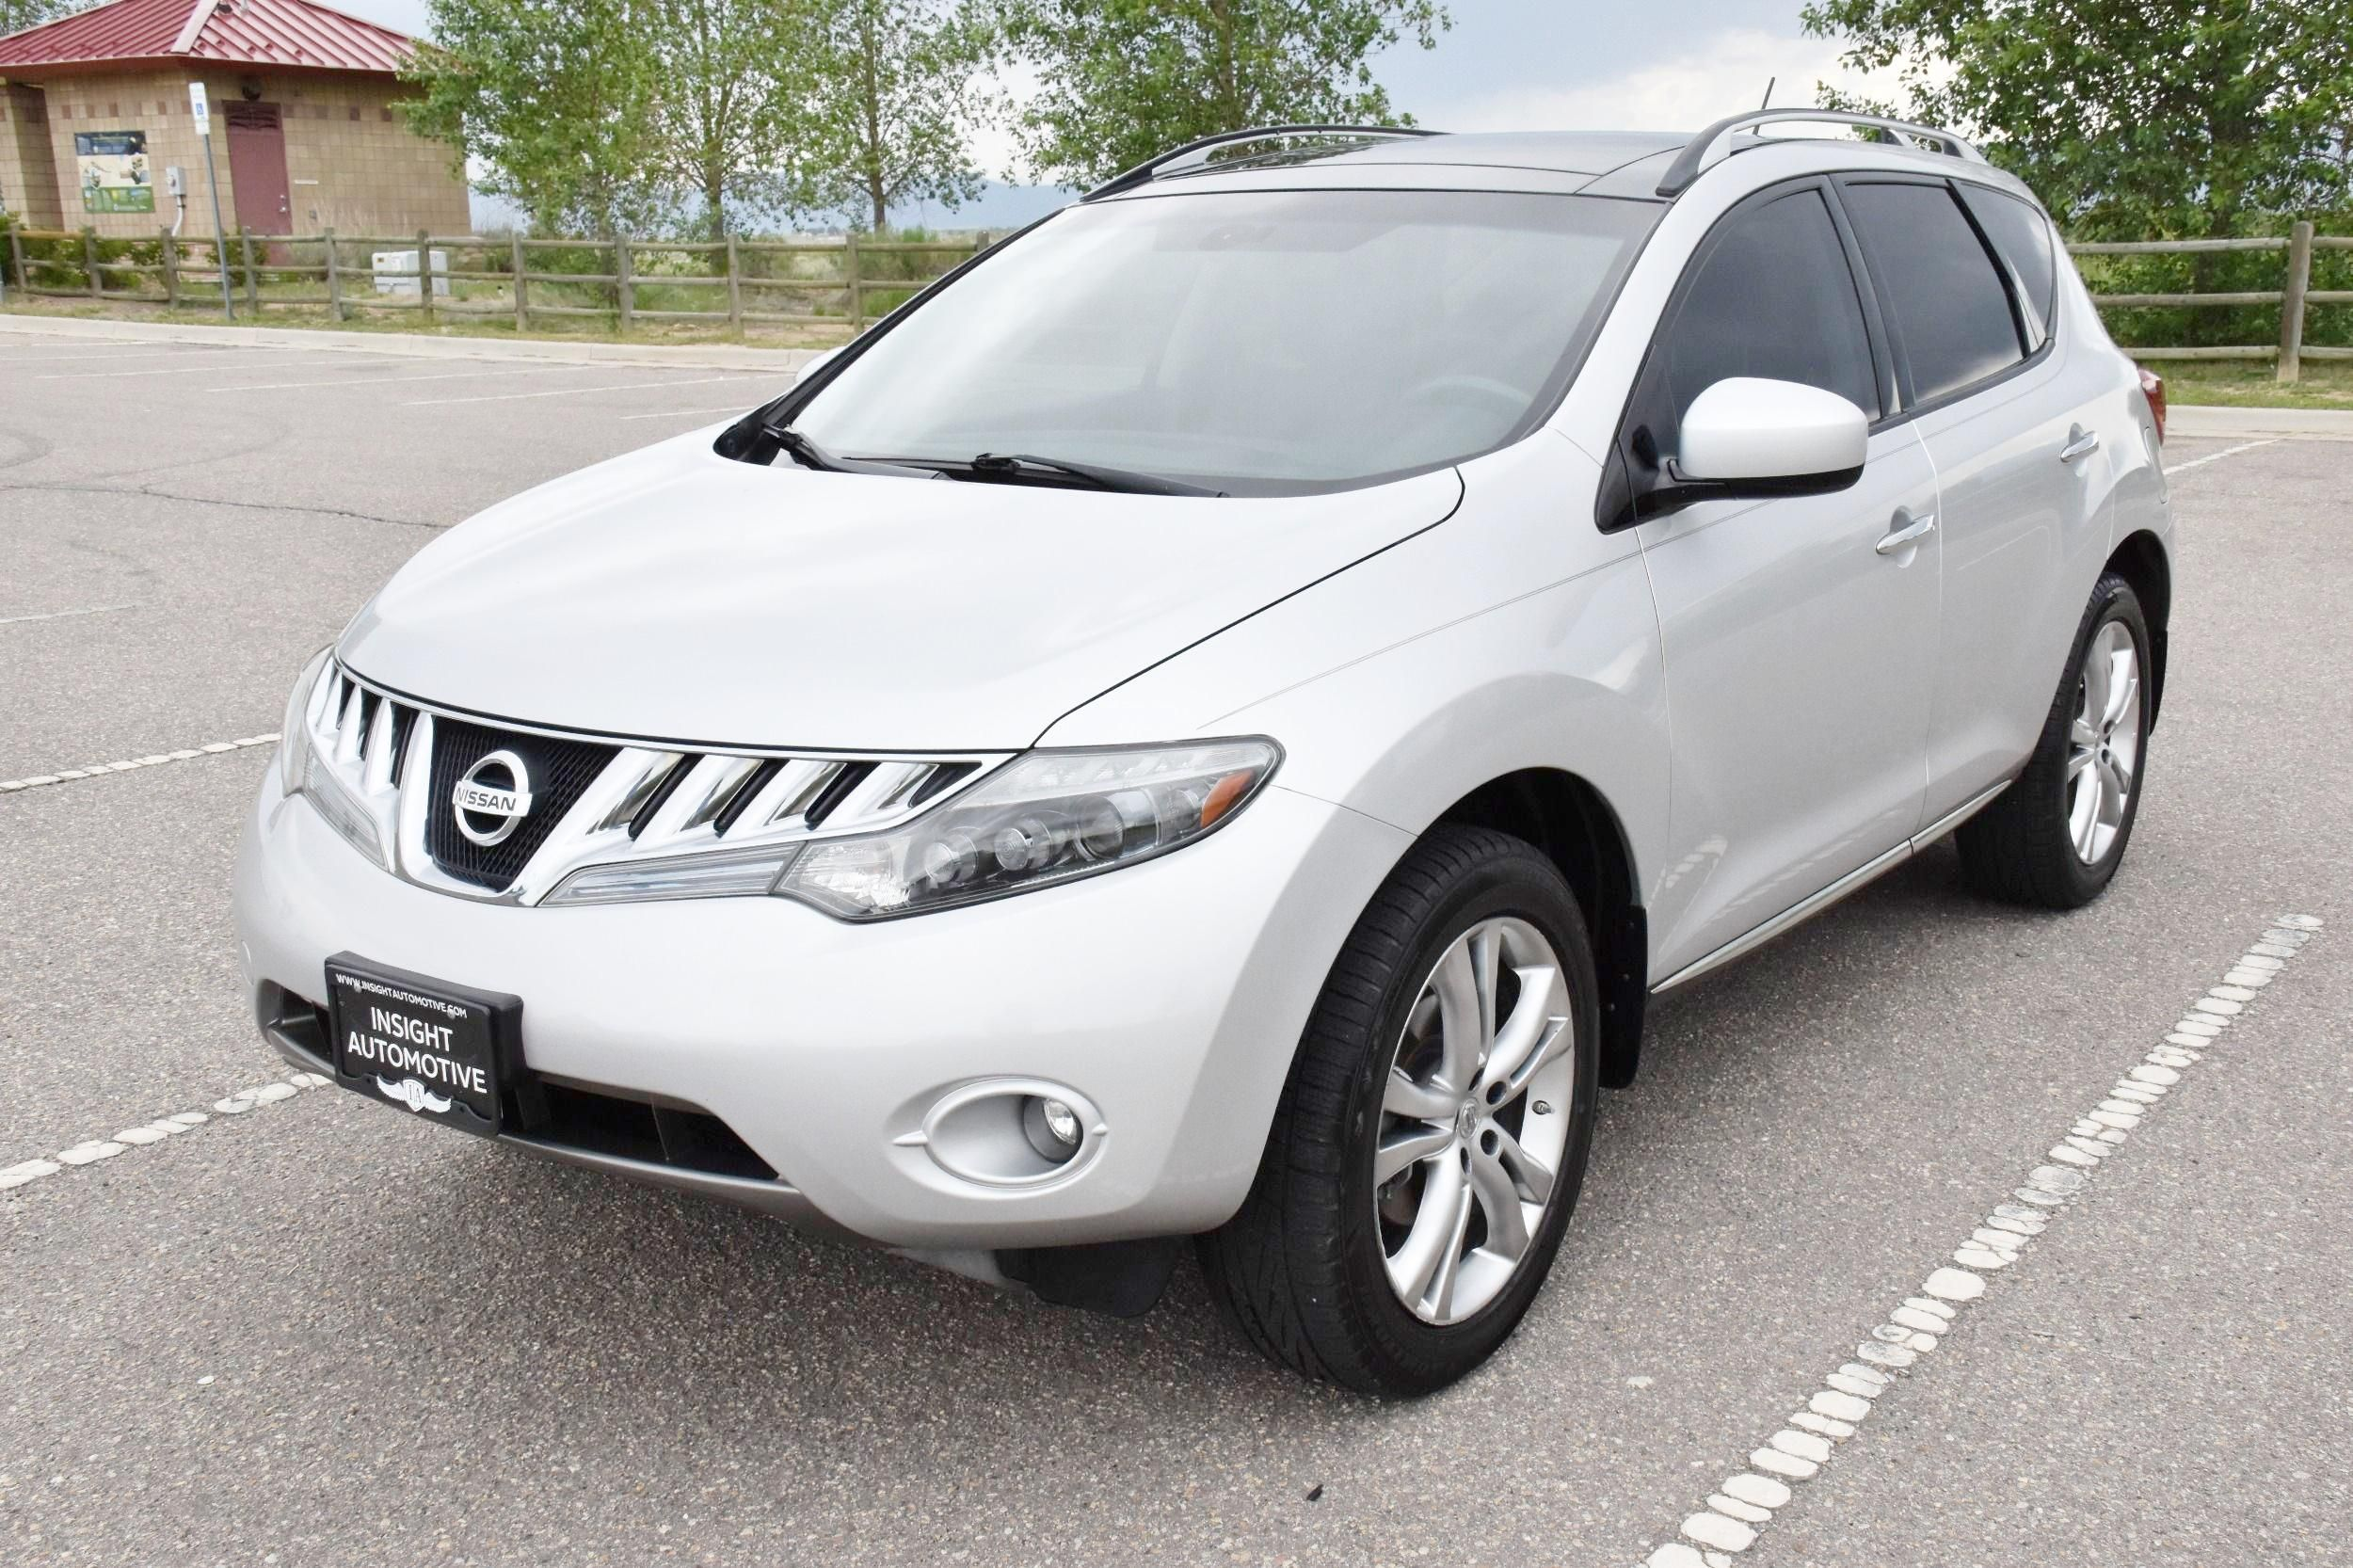 2009 nissan murano le insight automotive Murano LED Headlights 2009 nissan murano le awd heated leather panoramic sunroof back up camera